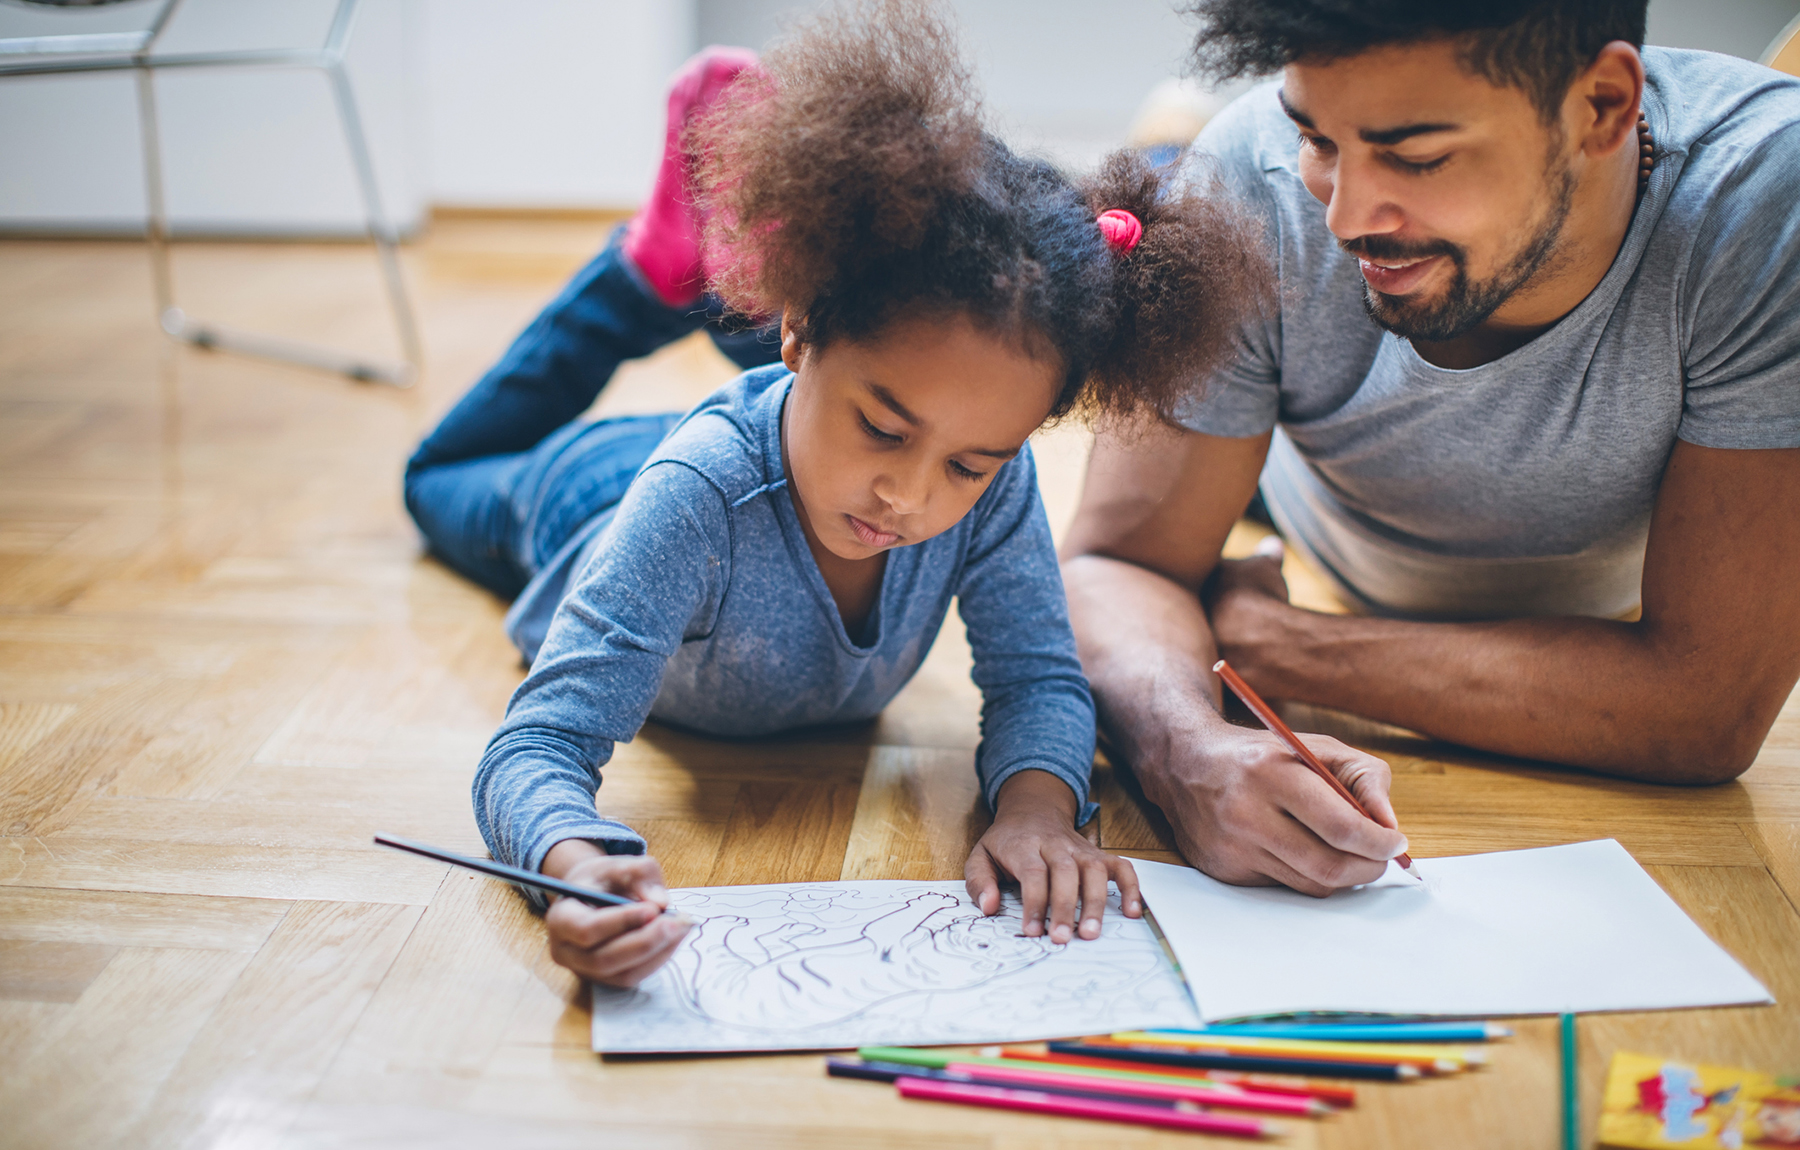 How to Help Kids Remember What Matters